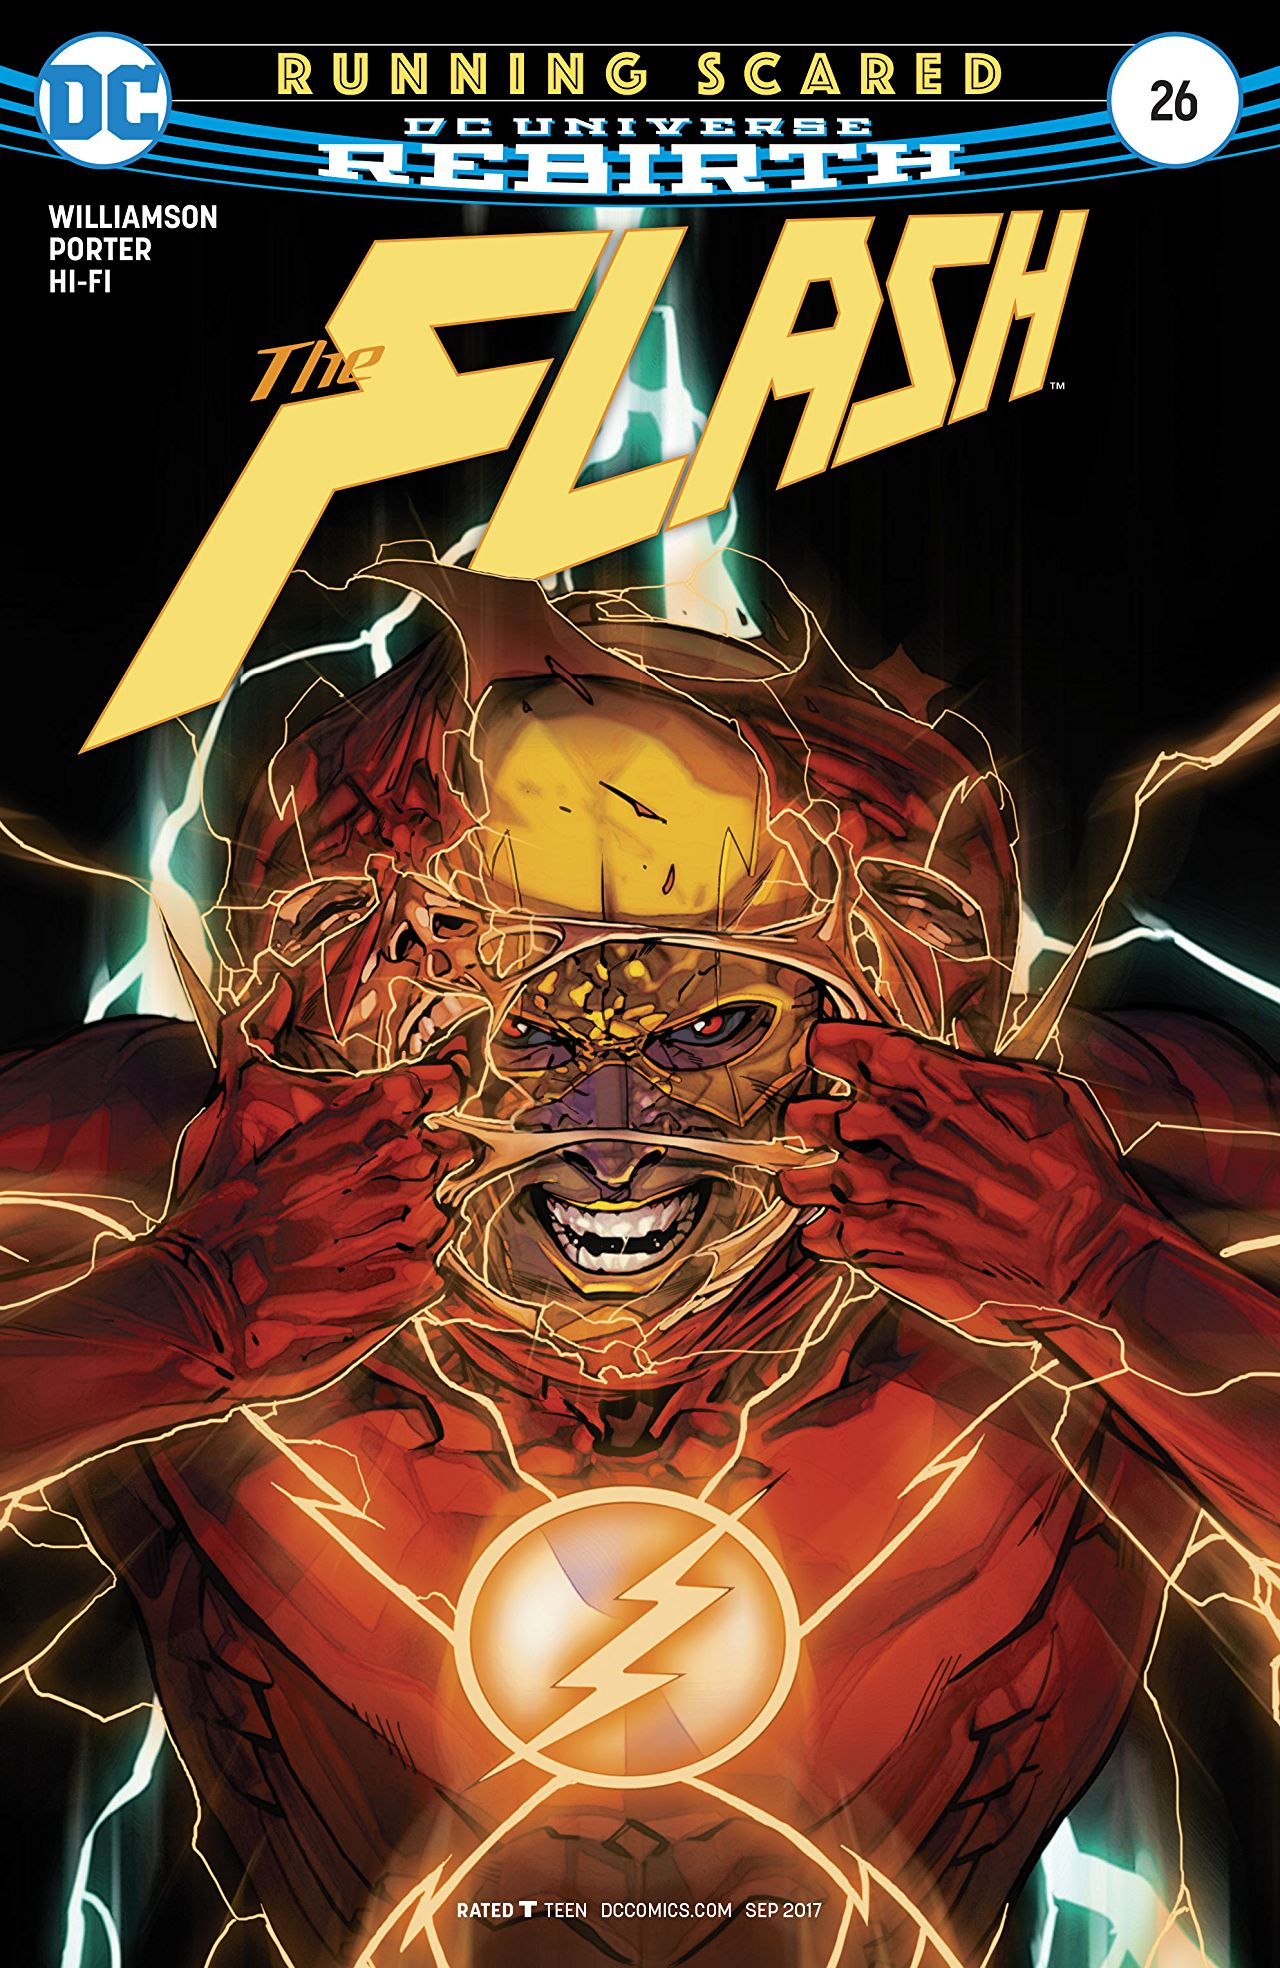 review THE FLASH #26